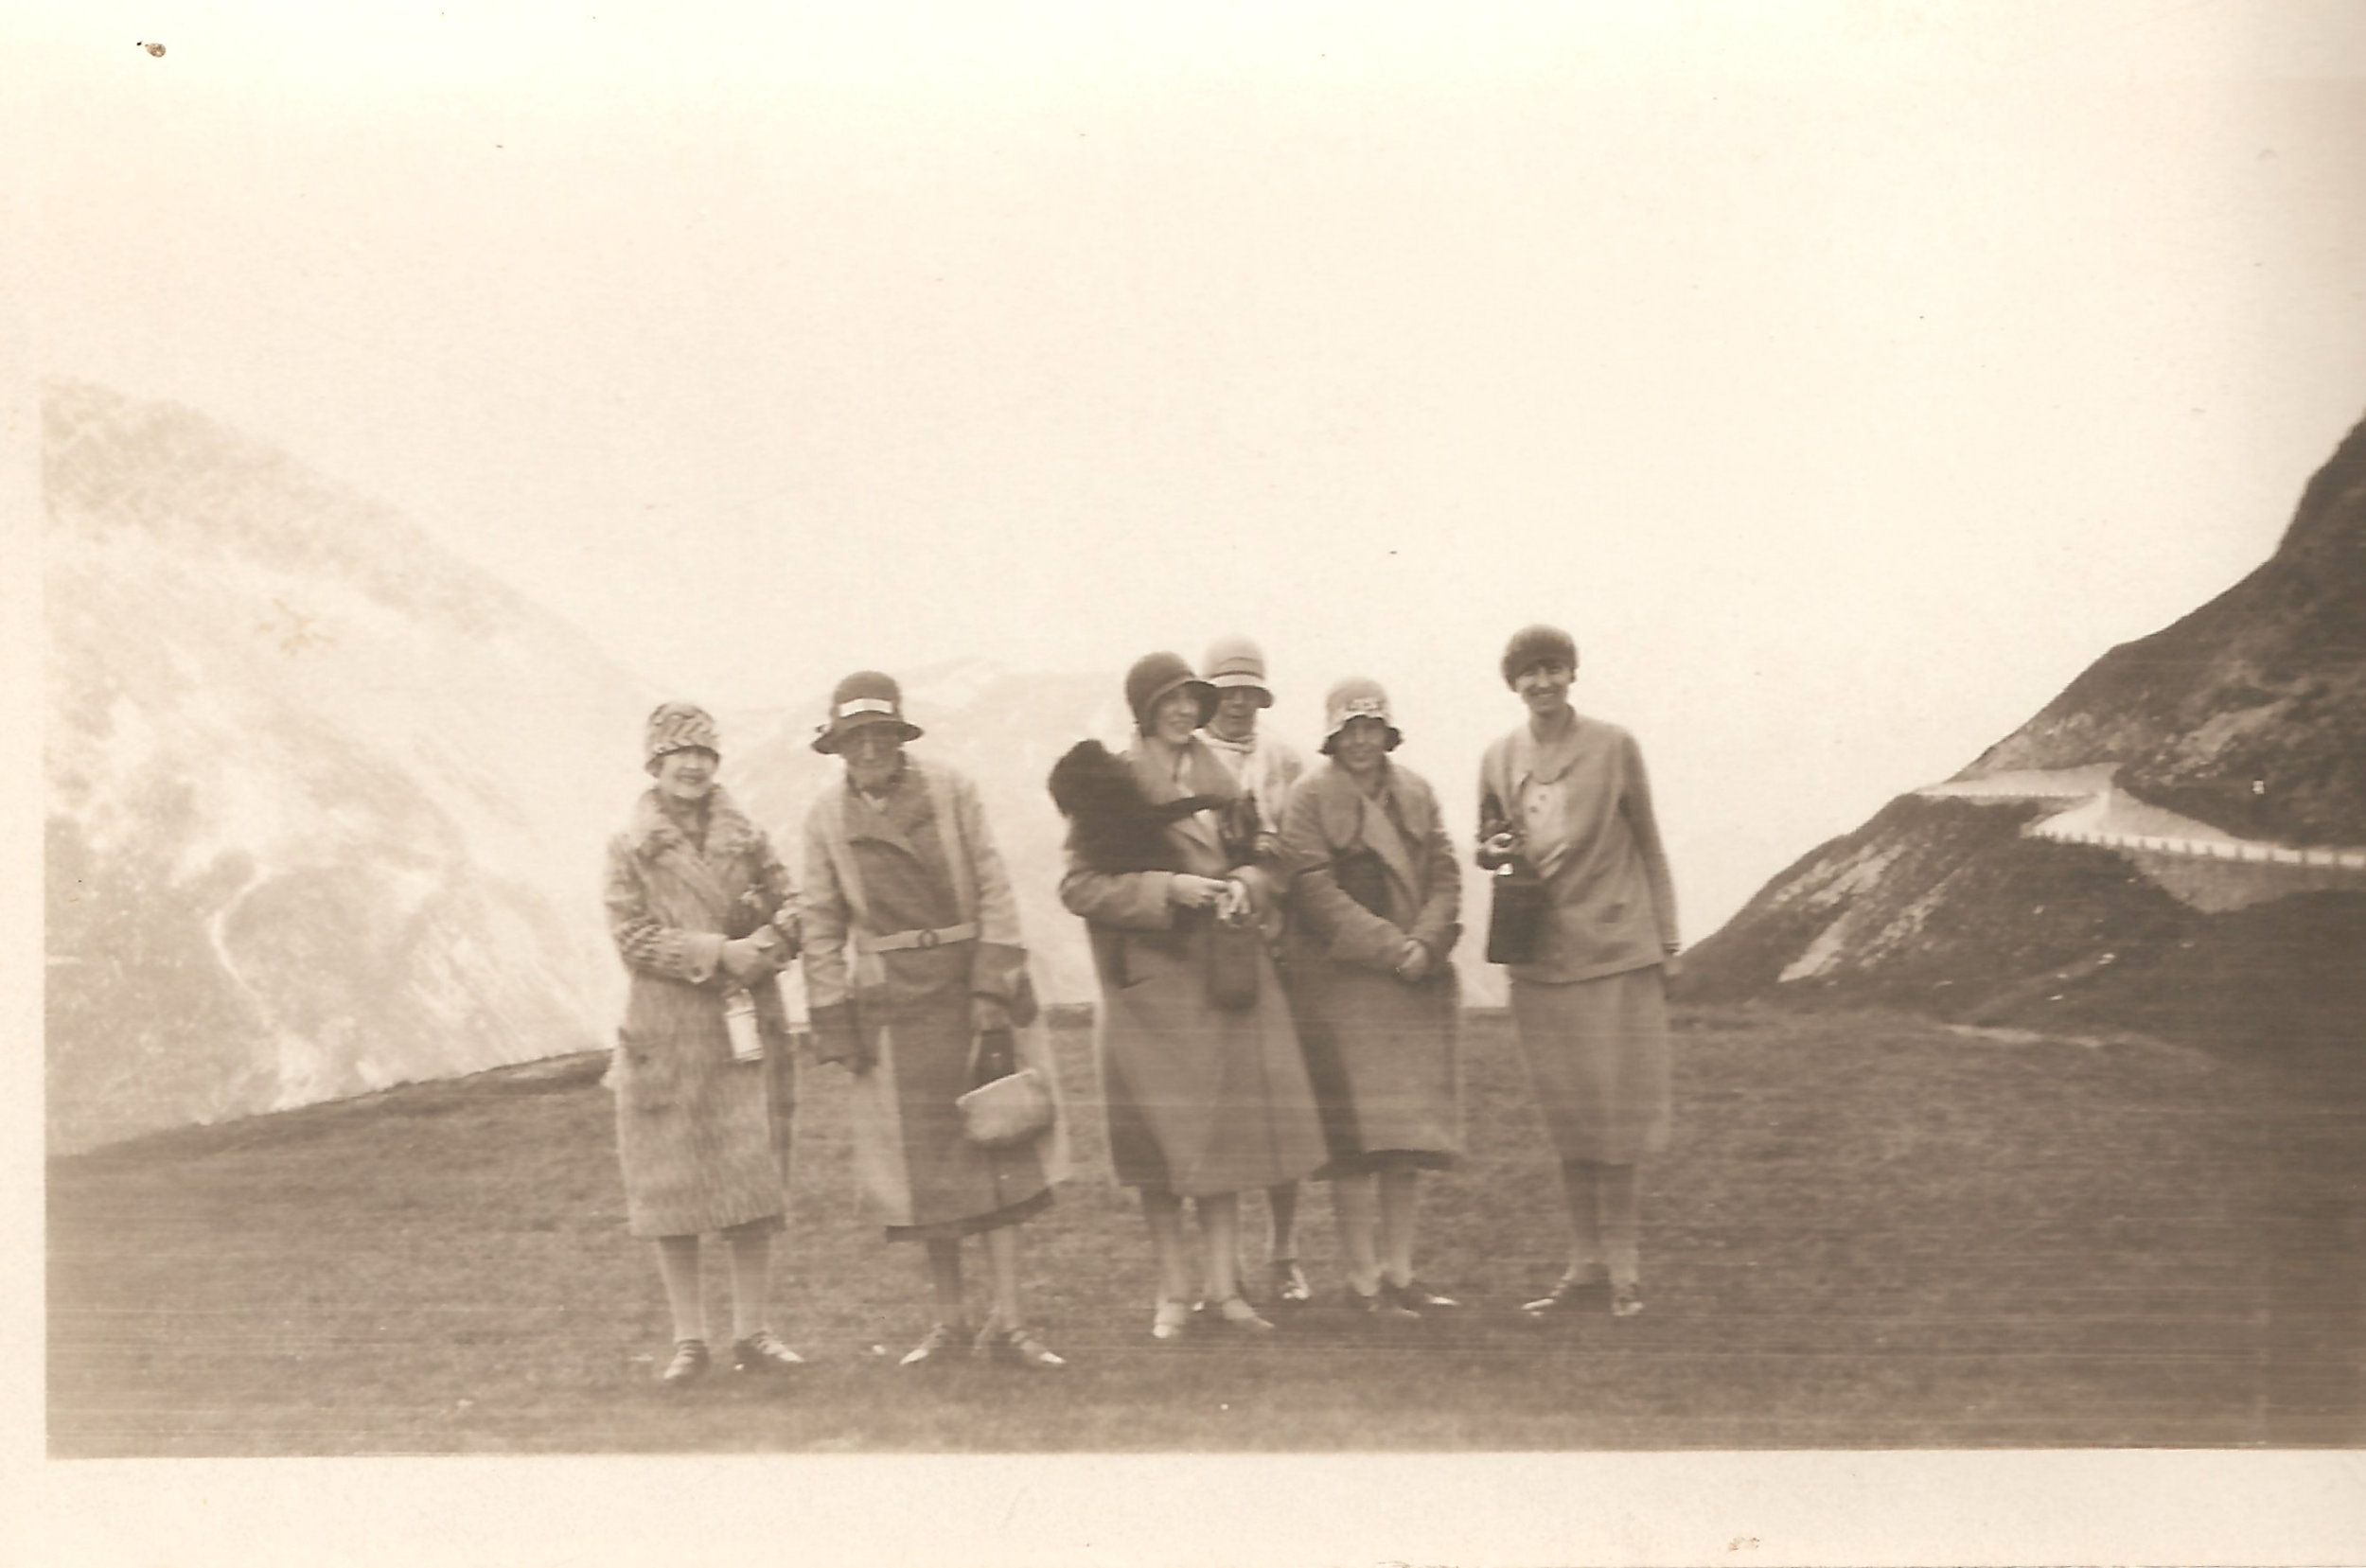 Group photo at the top of the mountain. Evelyn Hazen may very well be taking the photograph.